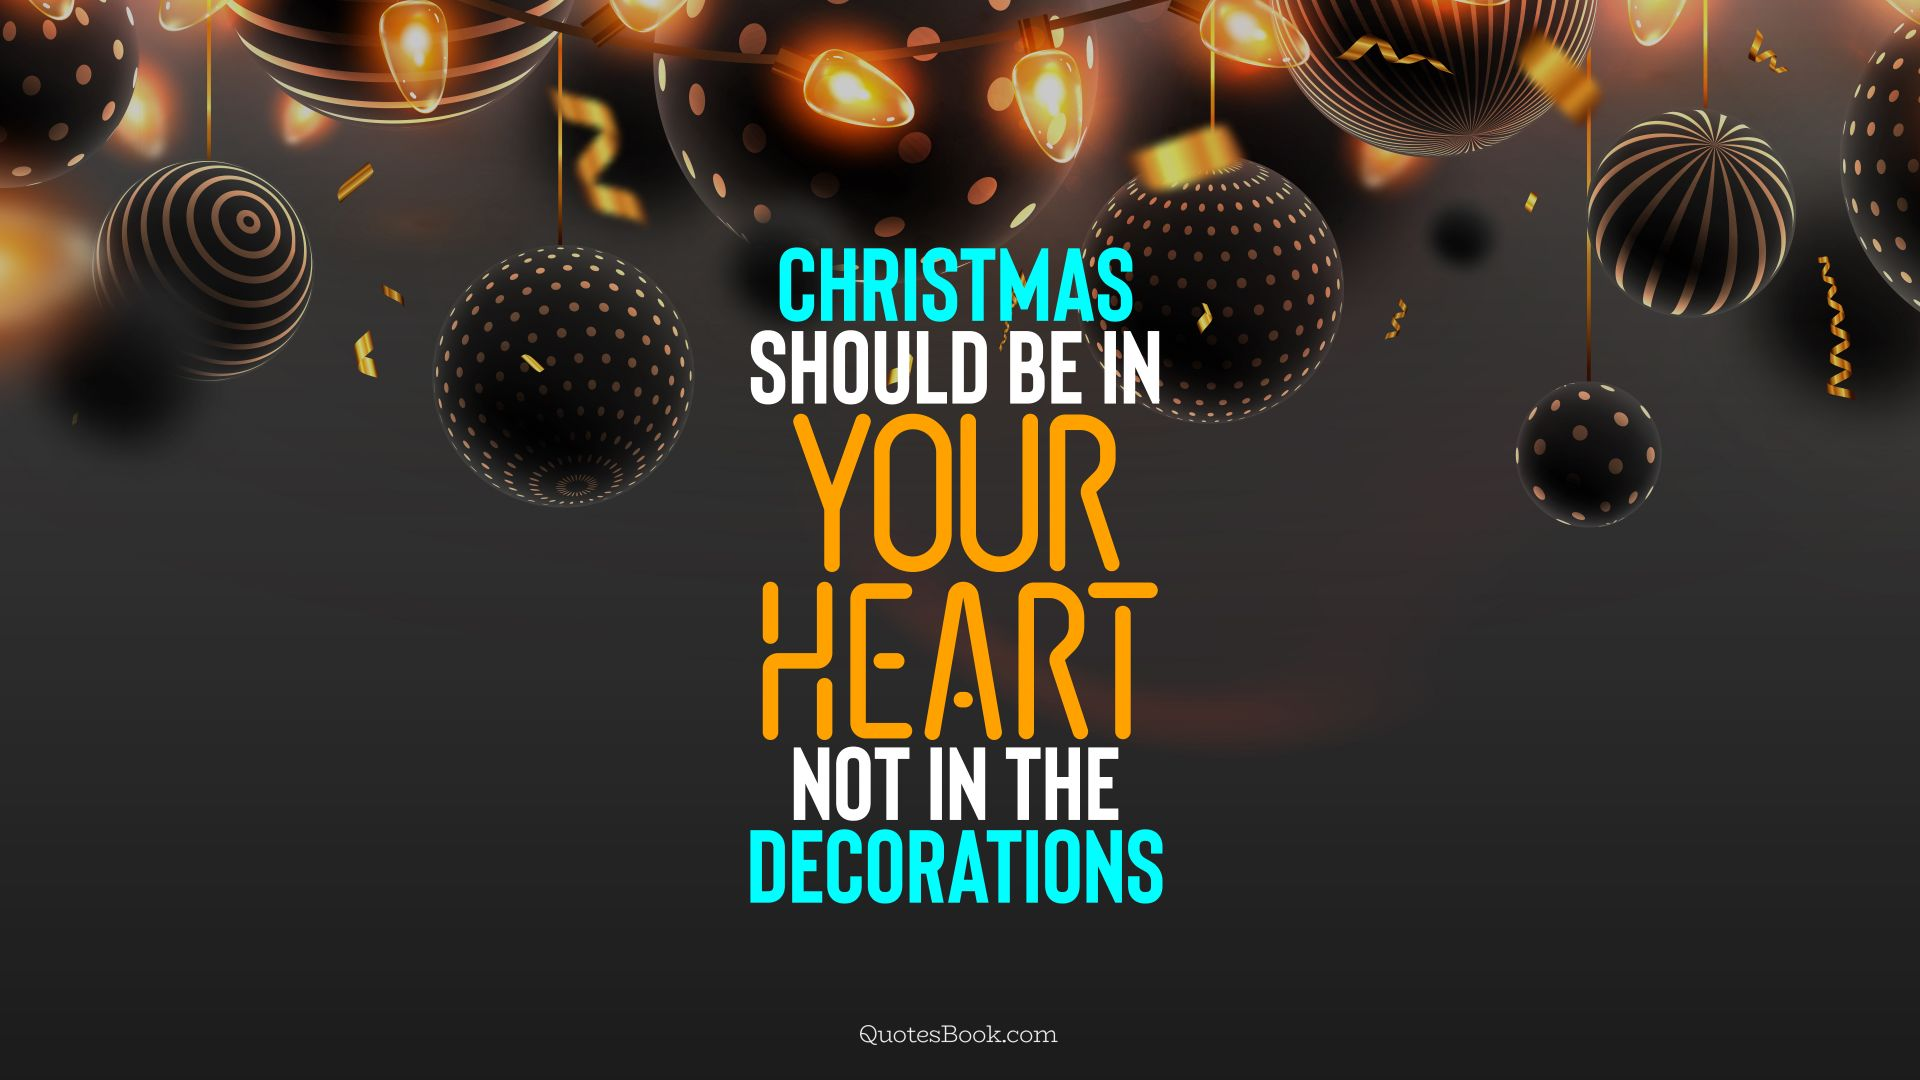 Christmas should be in your heart, not in the decorations. - Quote by QuotesBook